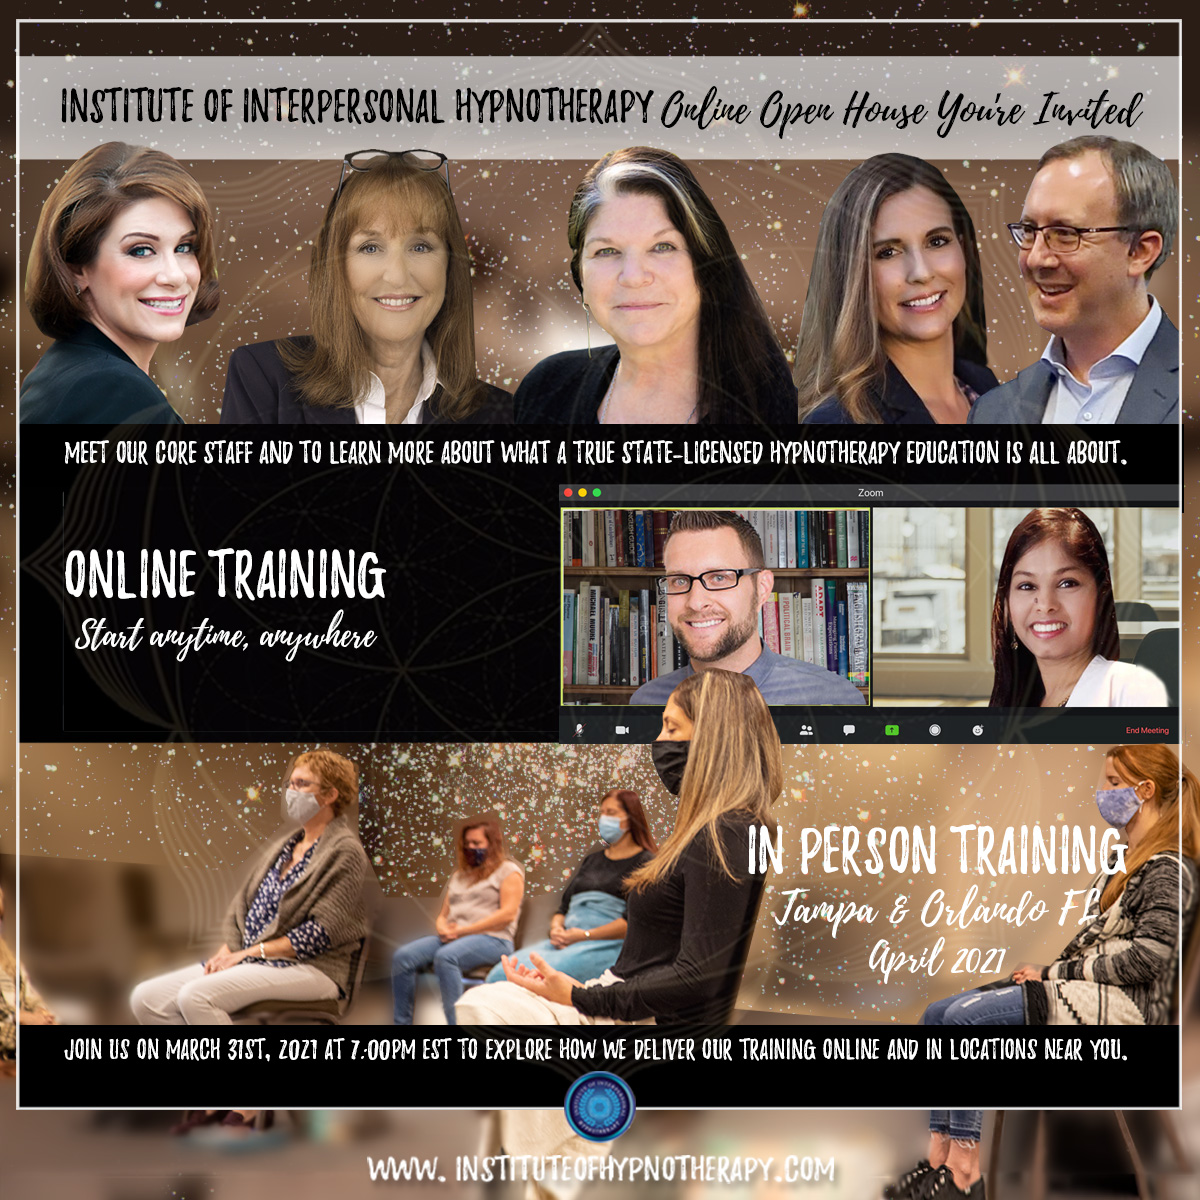 Institute of Interpersonal Hypnotherapy Online Open House THIS WEEK – You're Invited